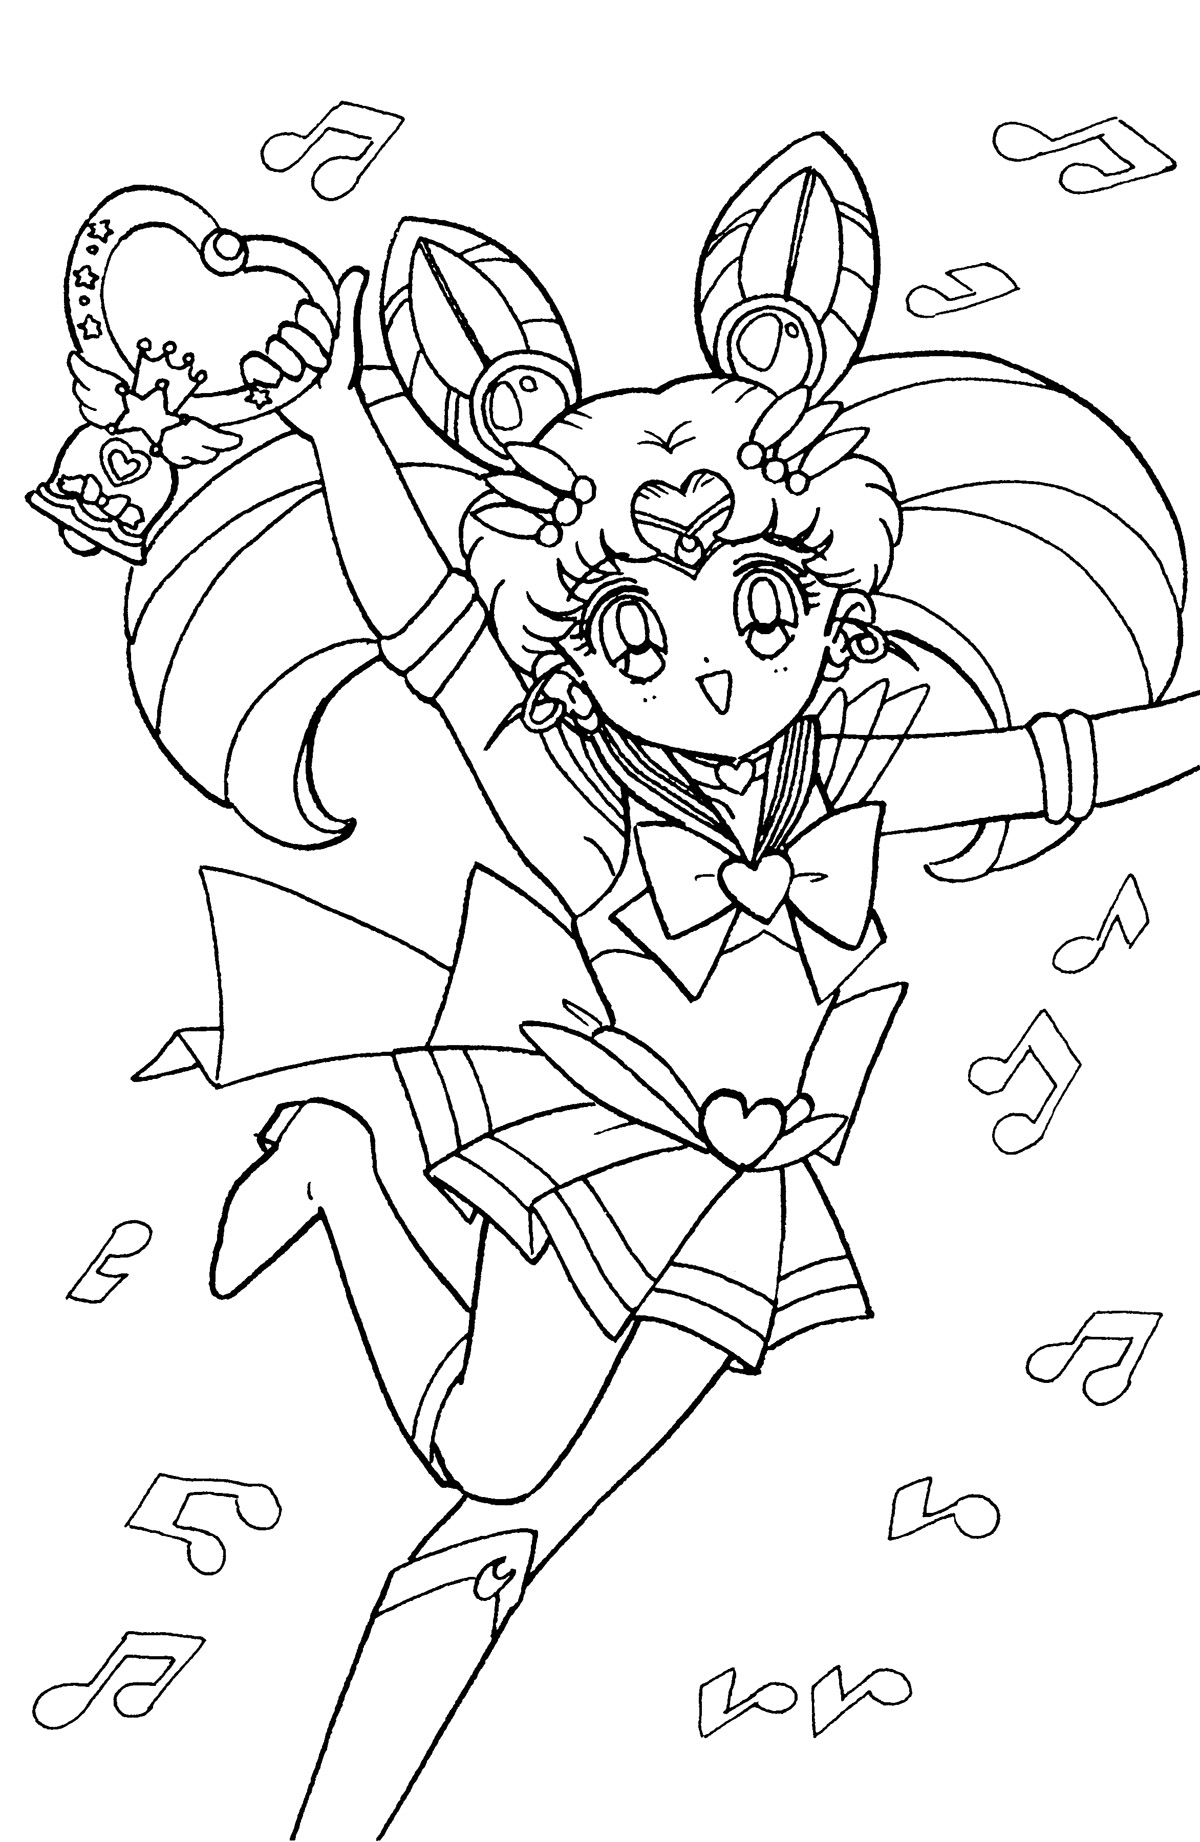 chibi moon coloring pages - photo#17